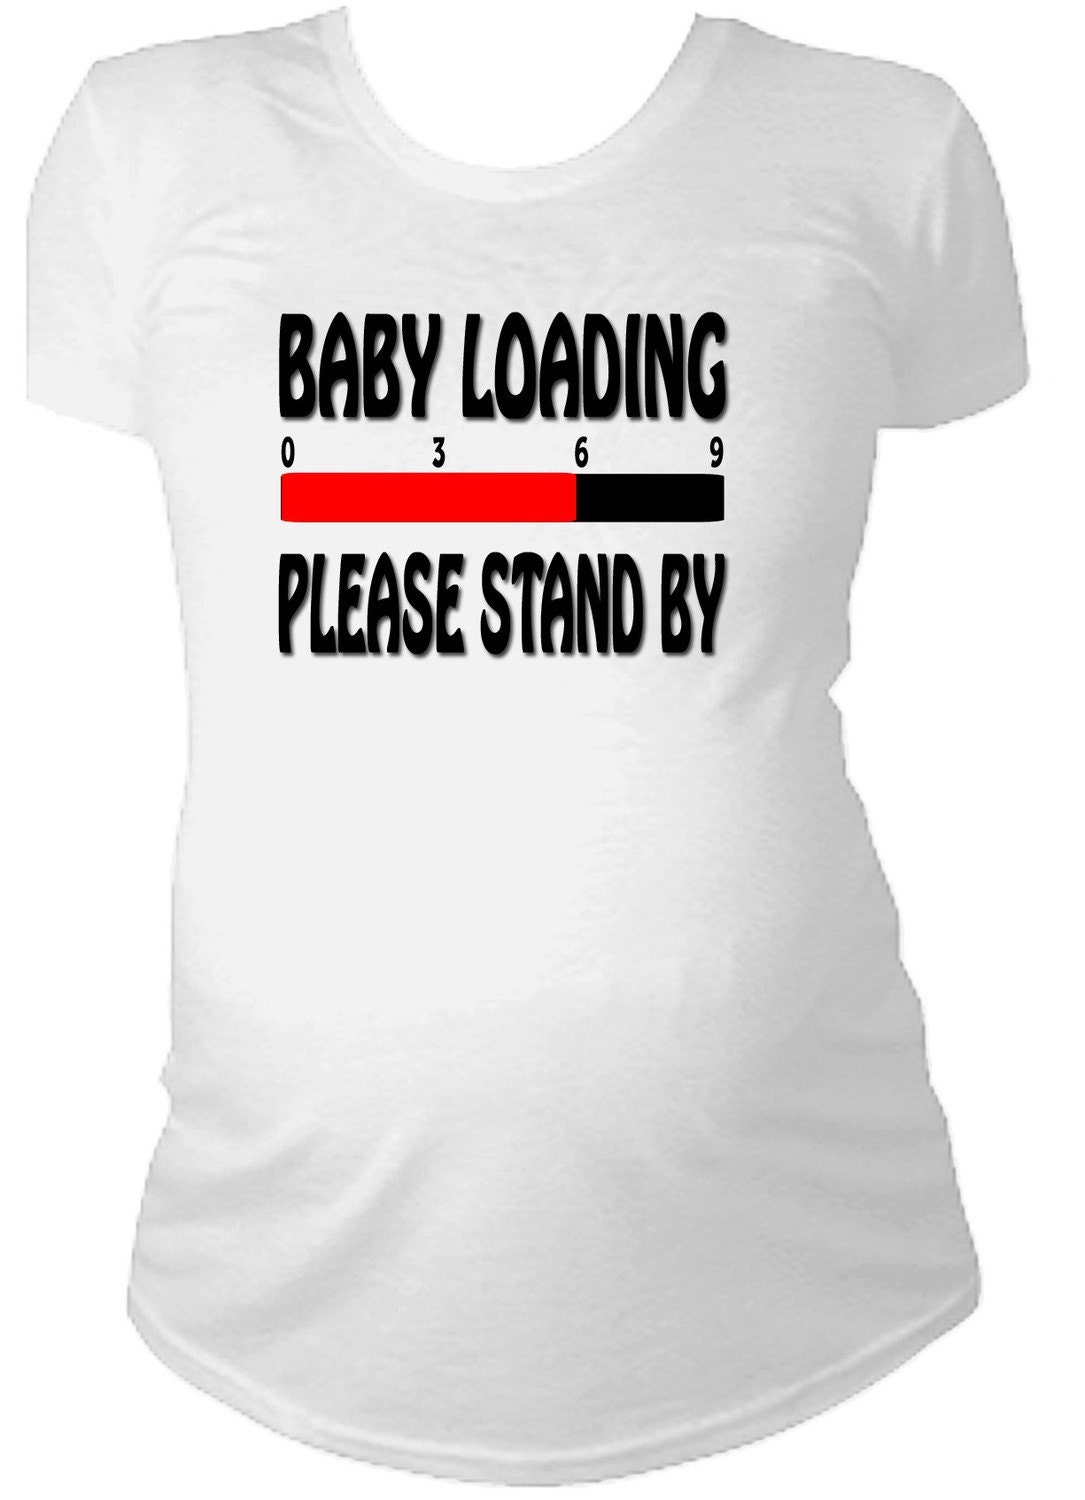 baby loading cute funny maternity t shirt by customteesfortots